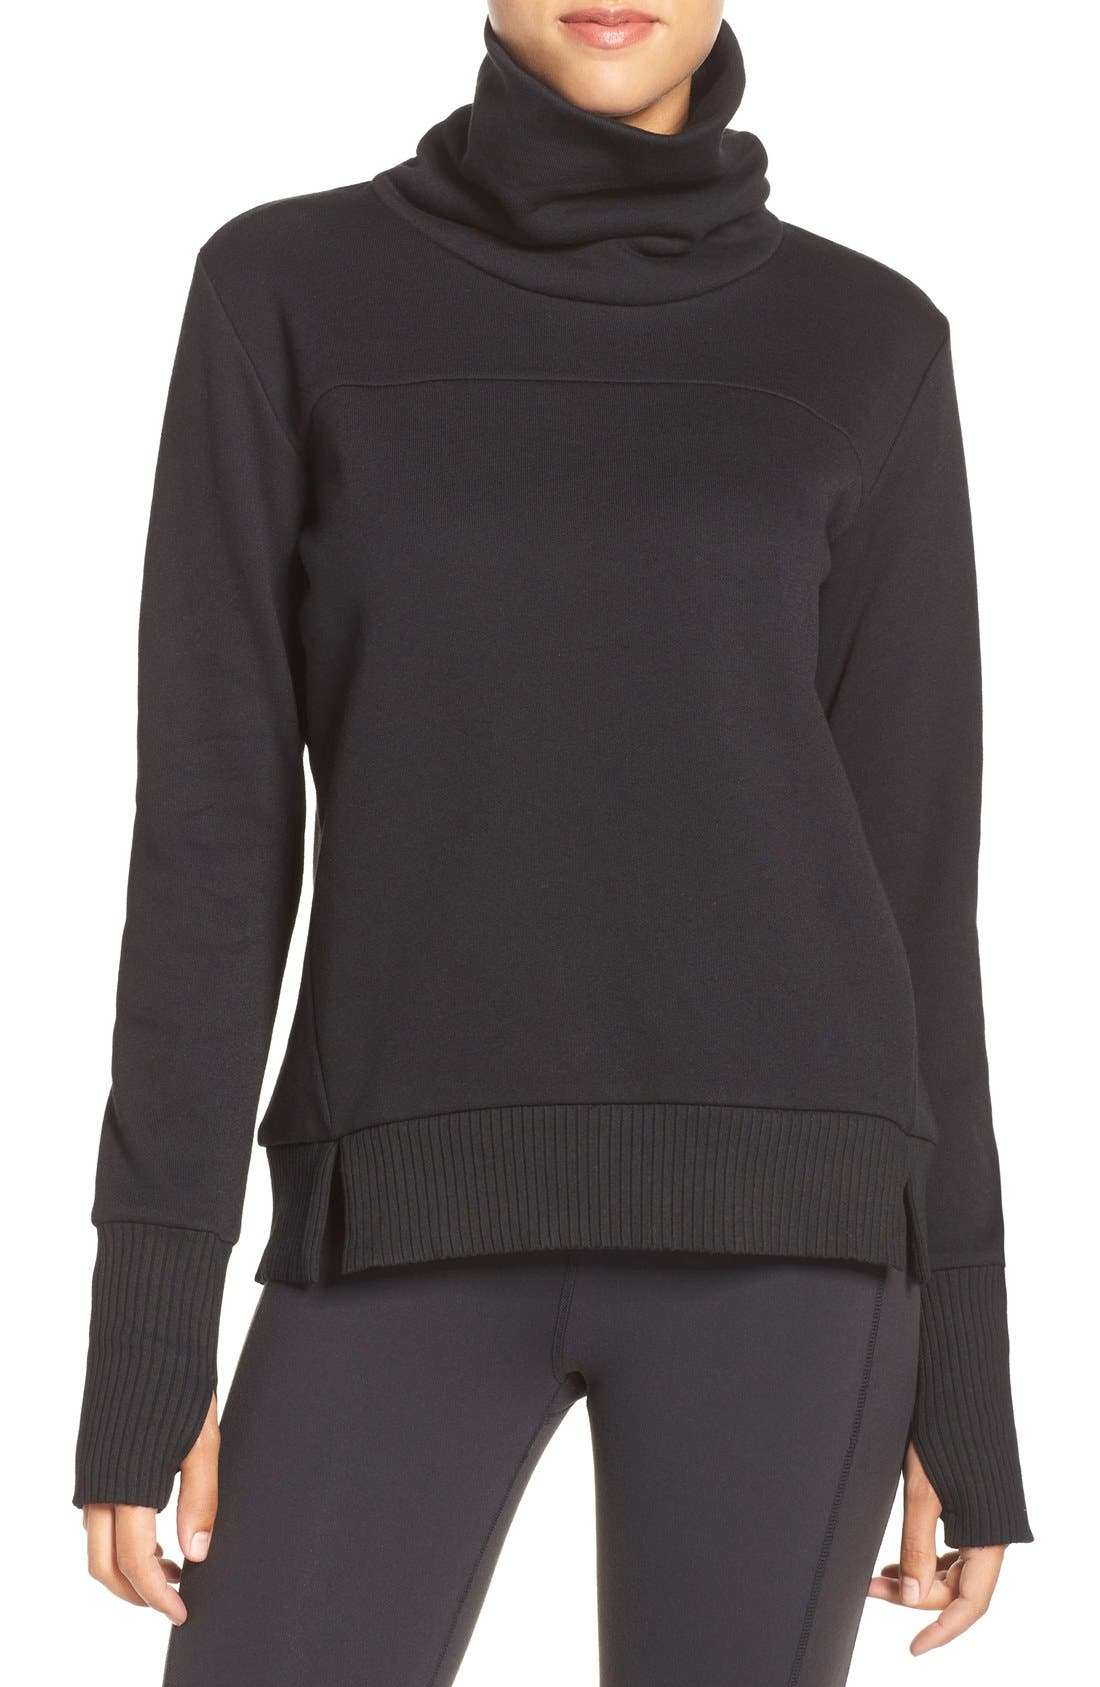 ALO 'Haze' Funnel Neck Sweatshirt, Main, color, 001